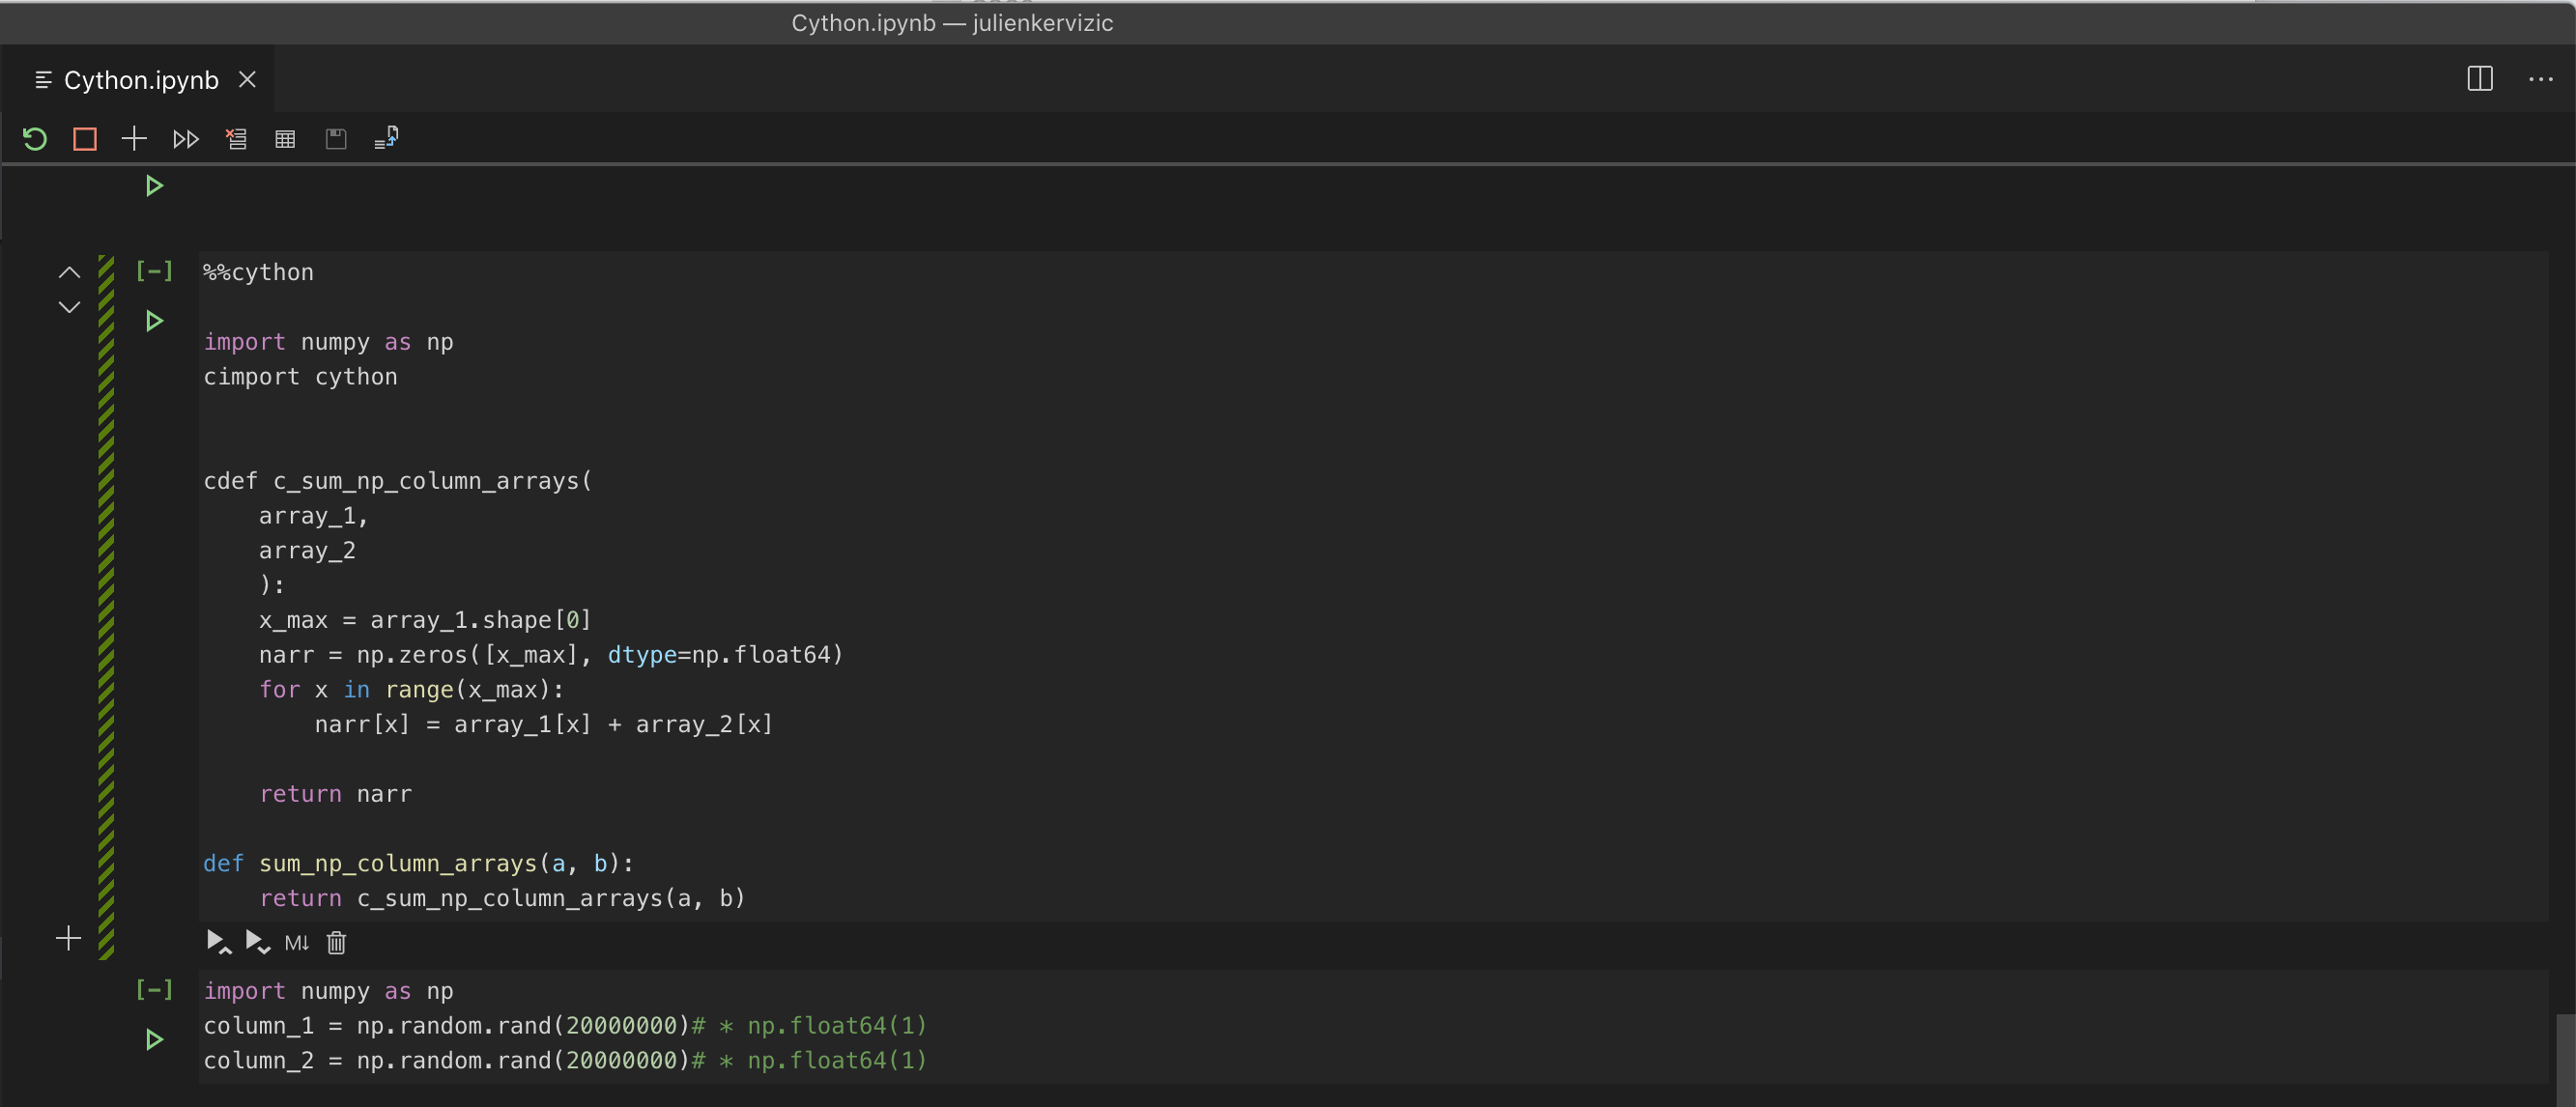 VisualStudio Code, iPython/Jupyter Notebook support